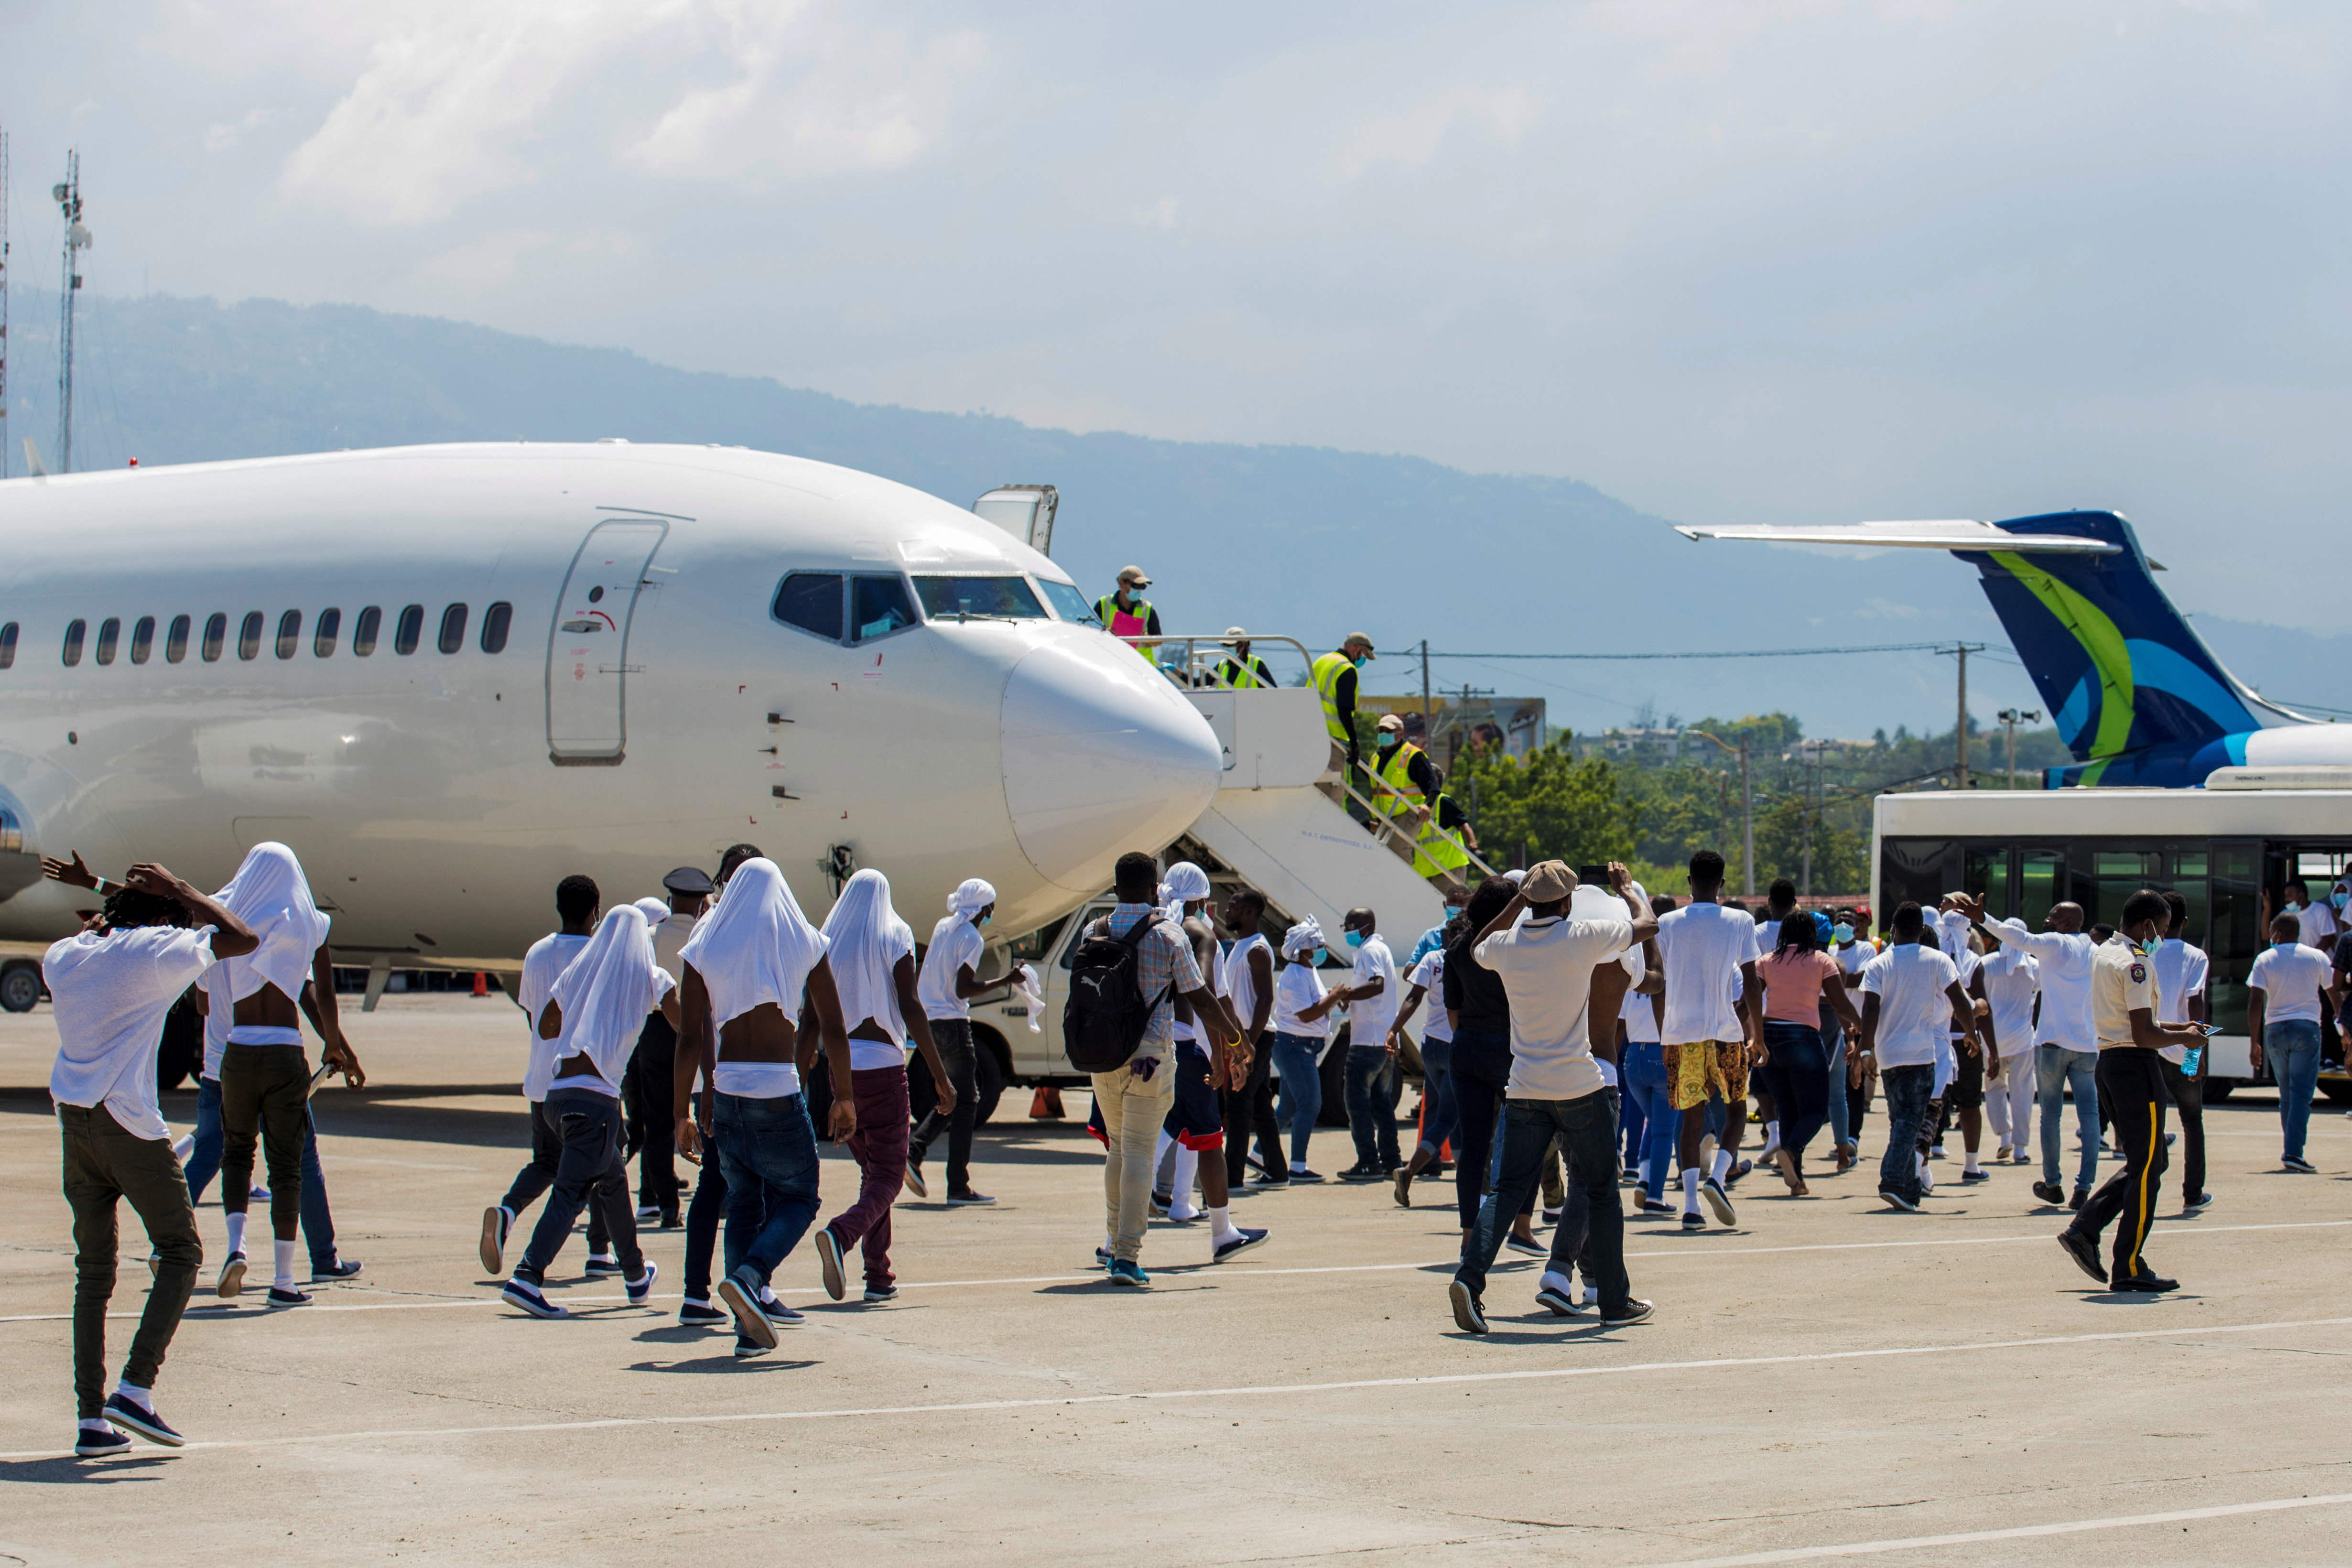 Haitian migrants board an airport bus aftter U.S. authorities flew them out of a Texas border city after crossing the Rio Grande river from Mexico, at Toussaint Louverture International Airport in Port-au-Prince, Haiti September 21, 2021. REUTERS/Ralph Tedy Erol